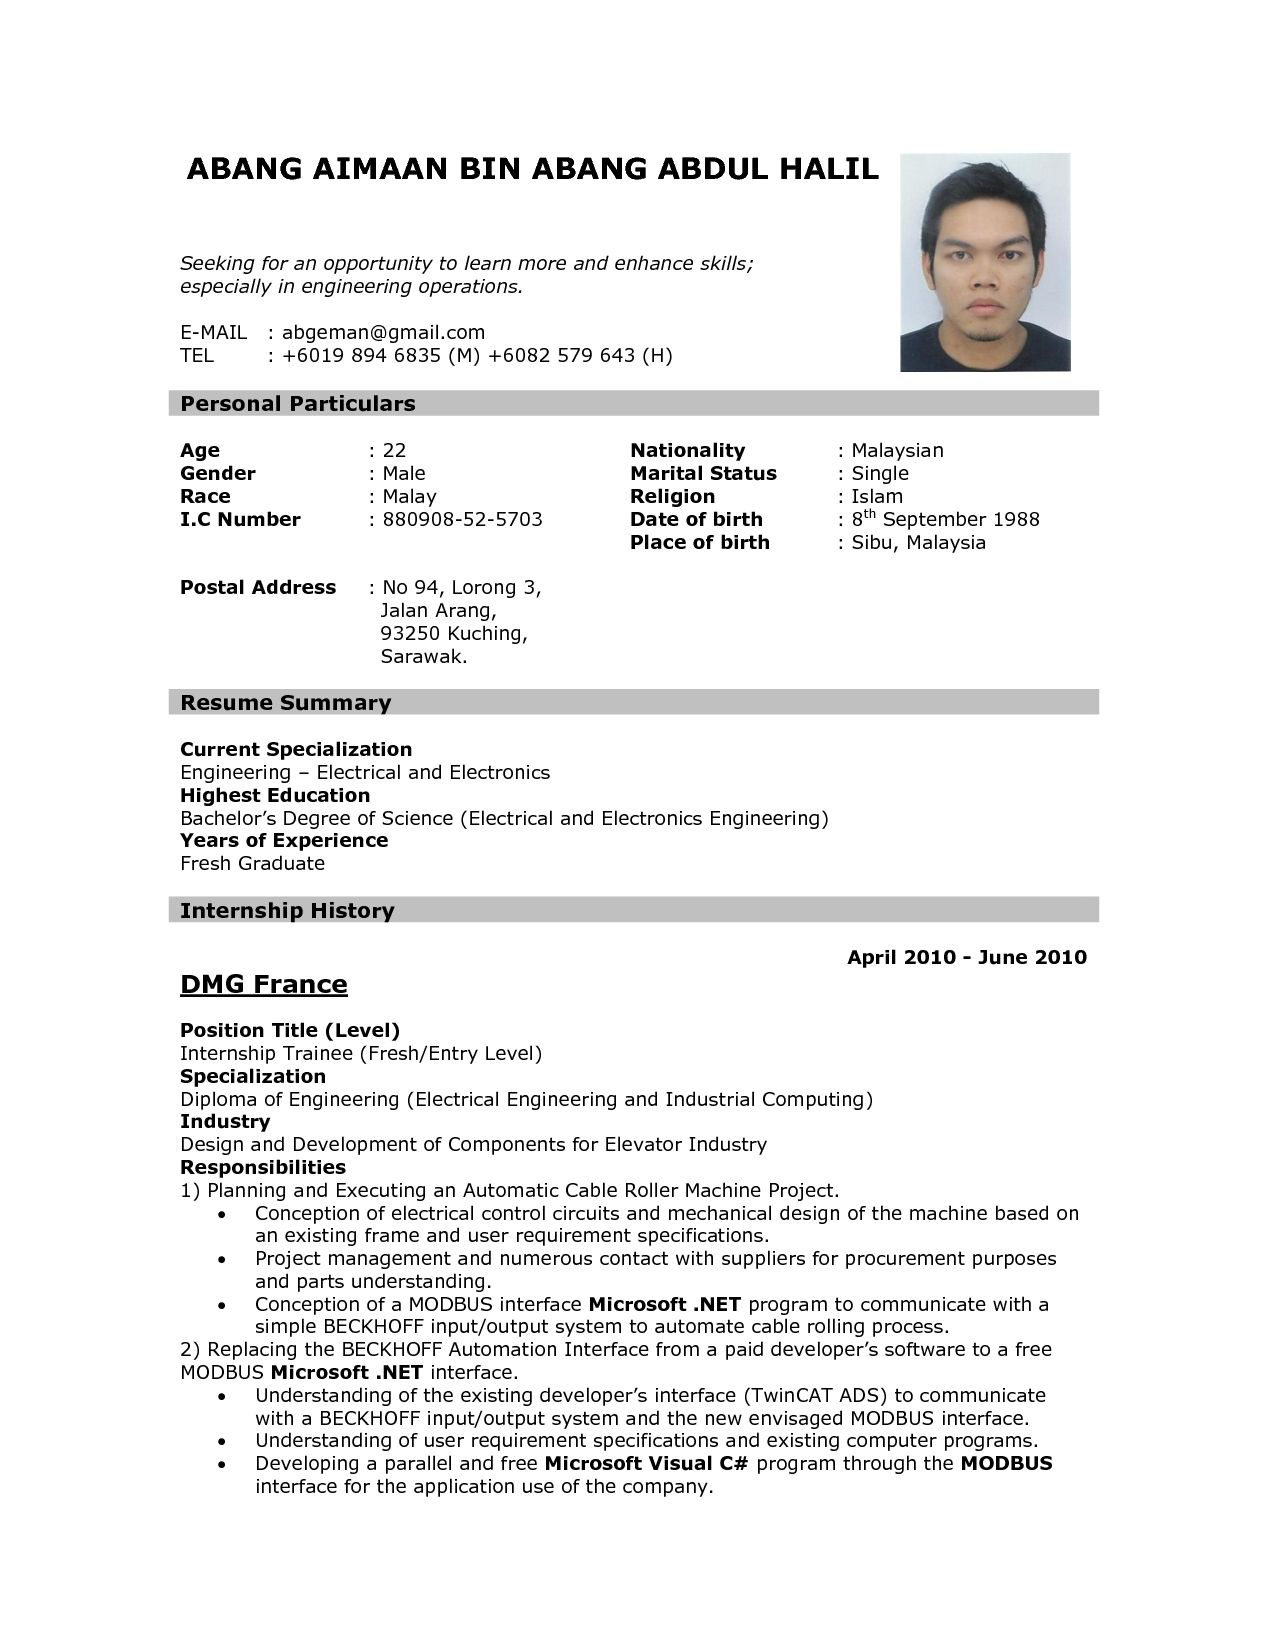 resume in job application